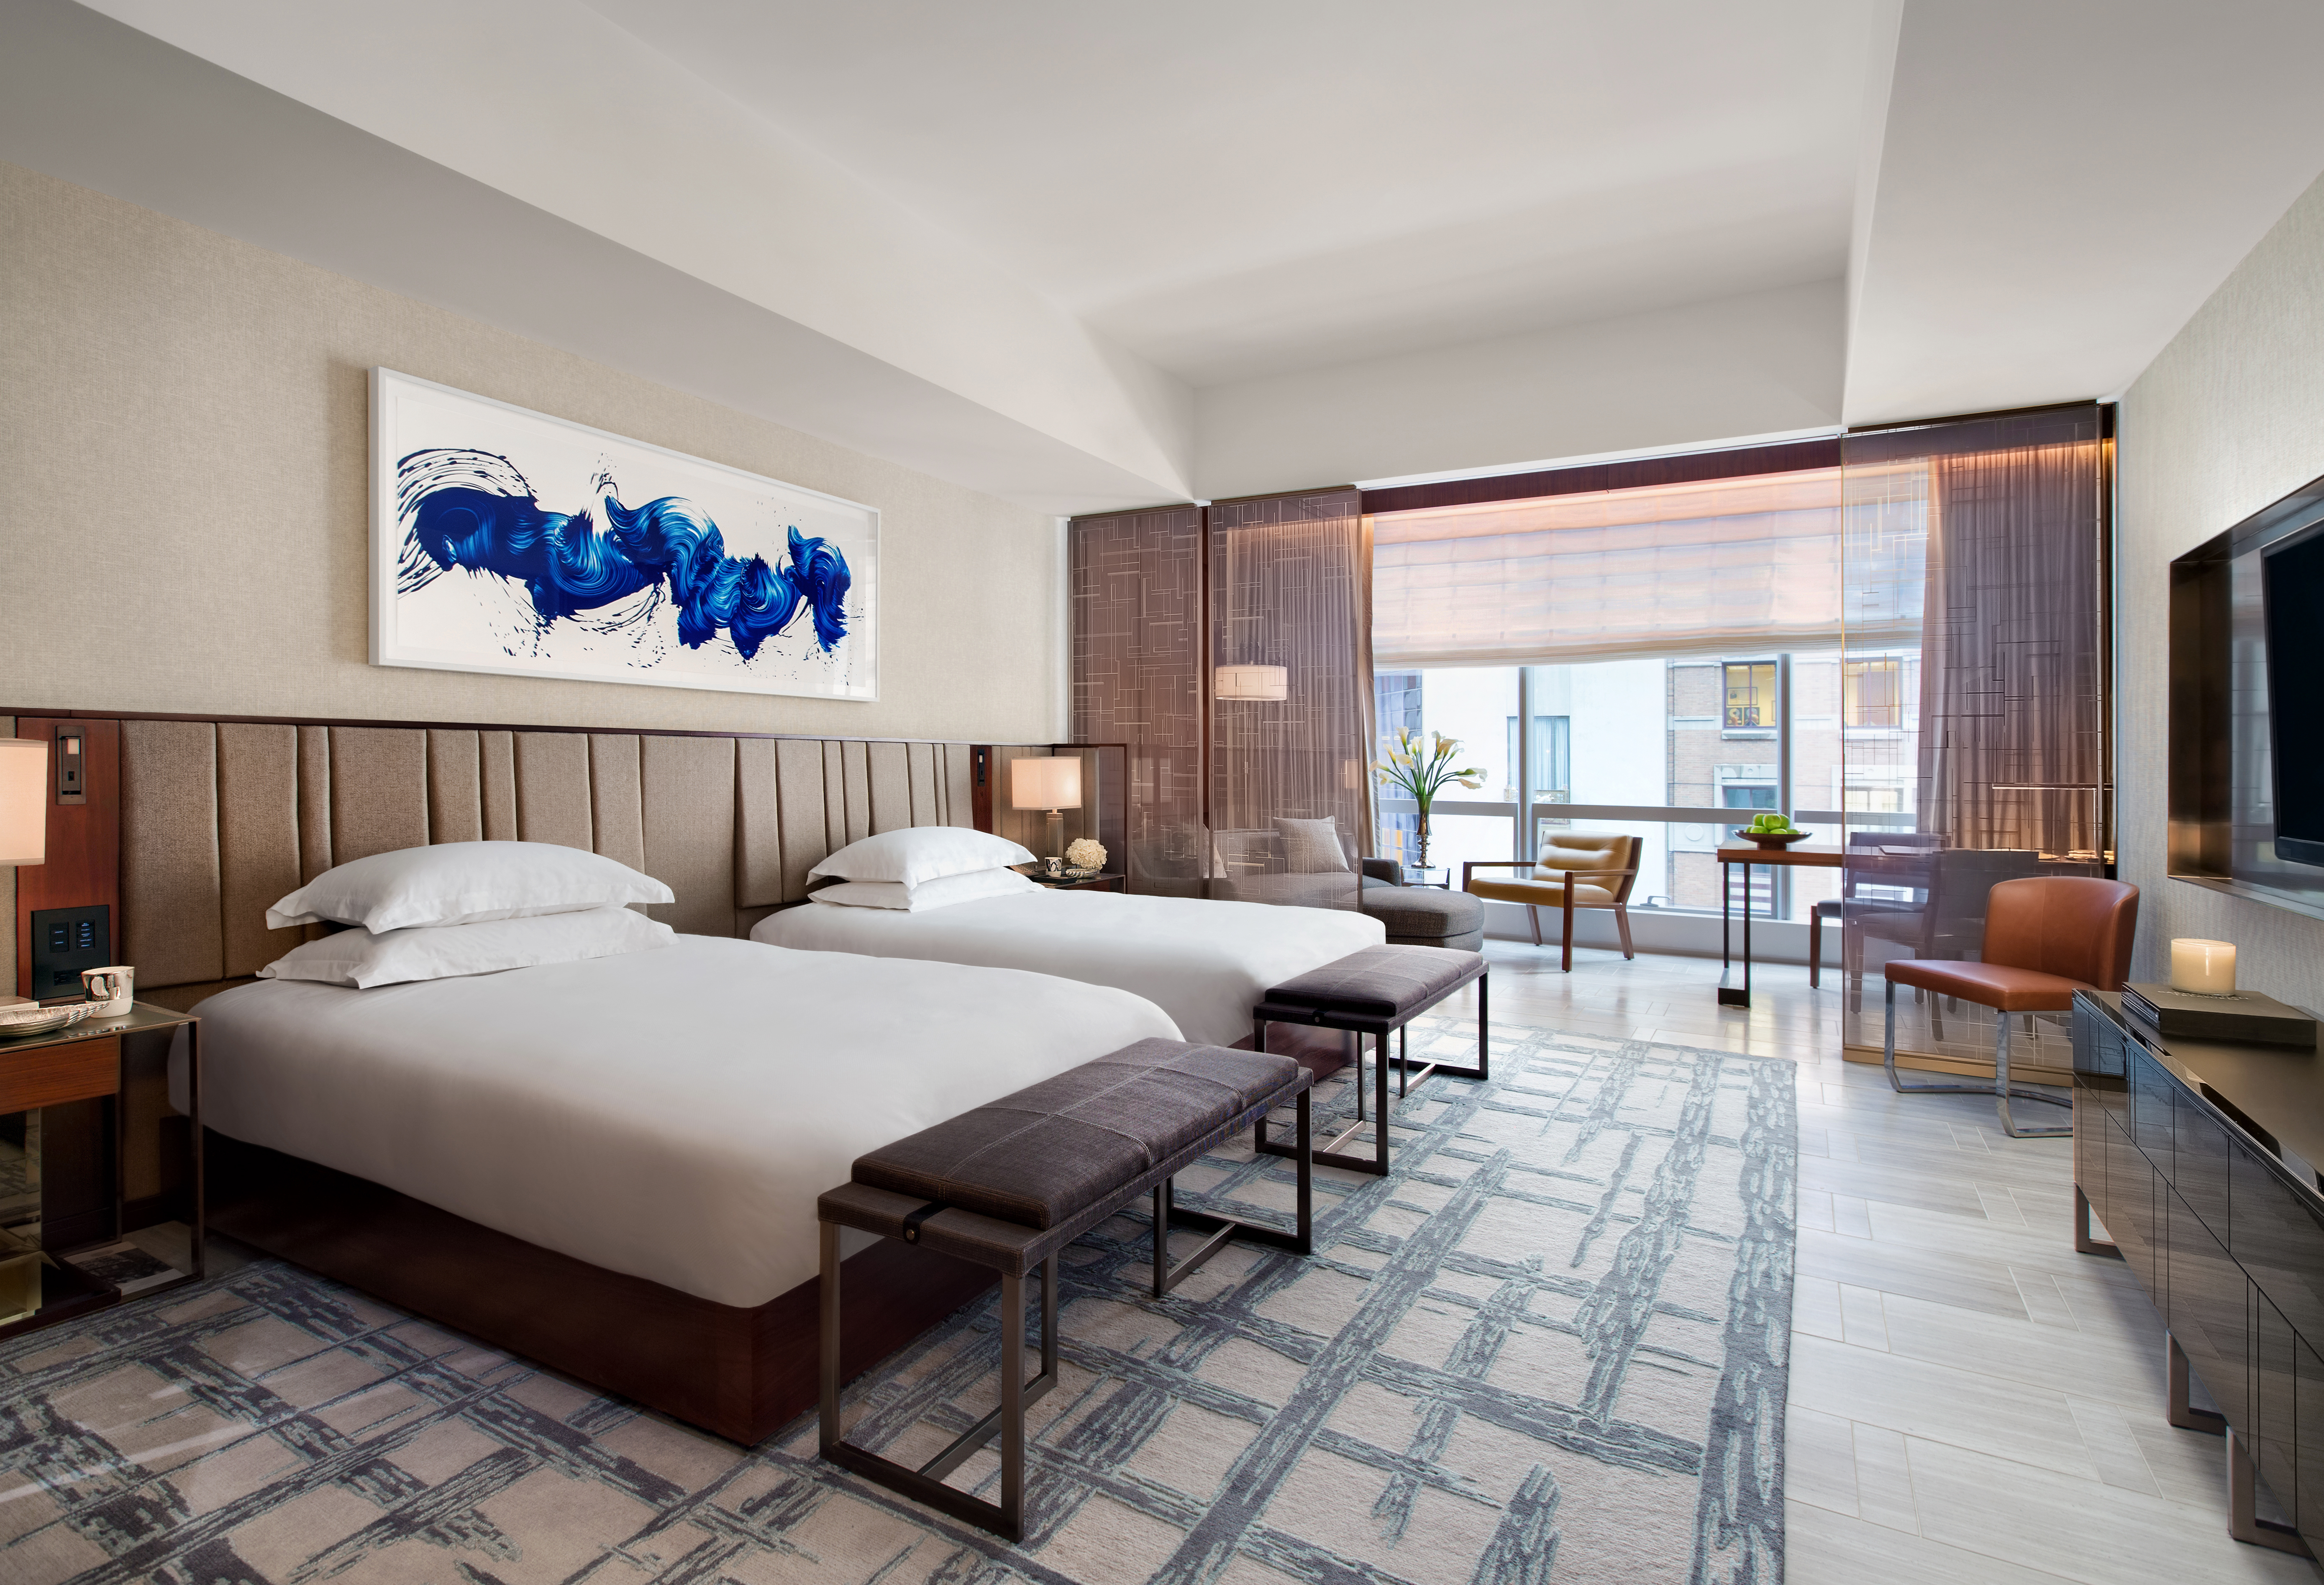 Park Hyatt New York features 210 luxurious guestrooms, including 92 premier suites, all with floor-to-ceiling windows. (Photo: Business Wire)